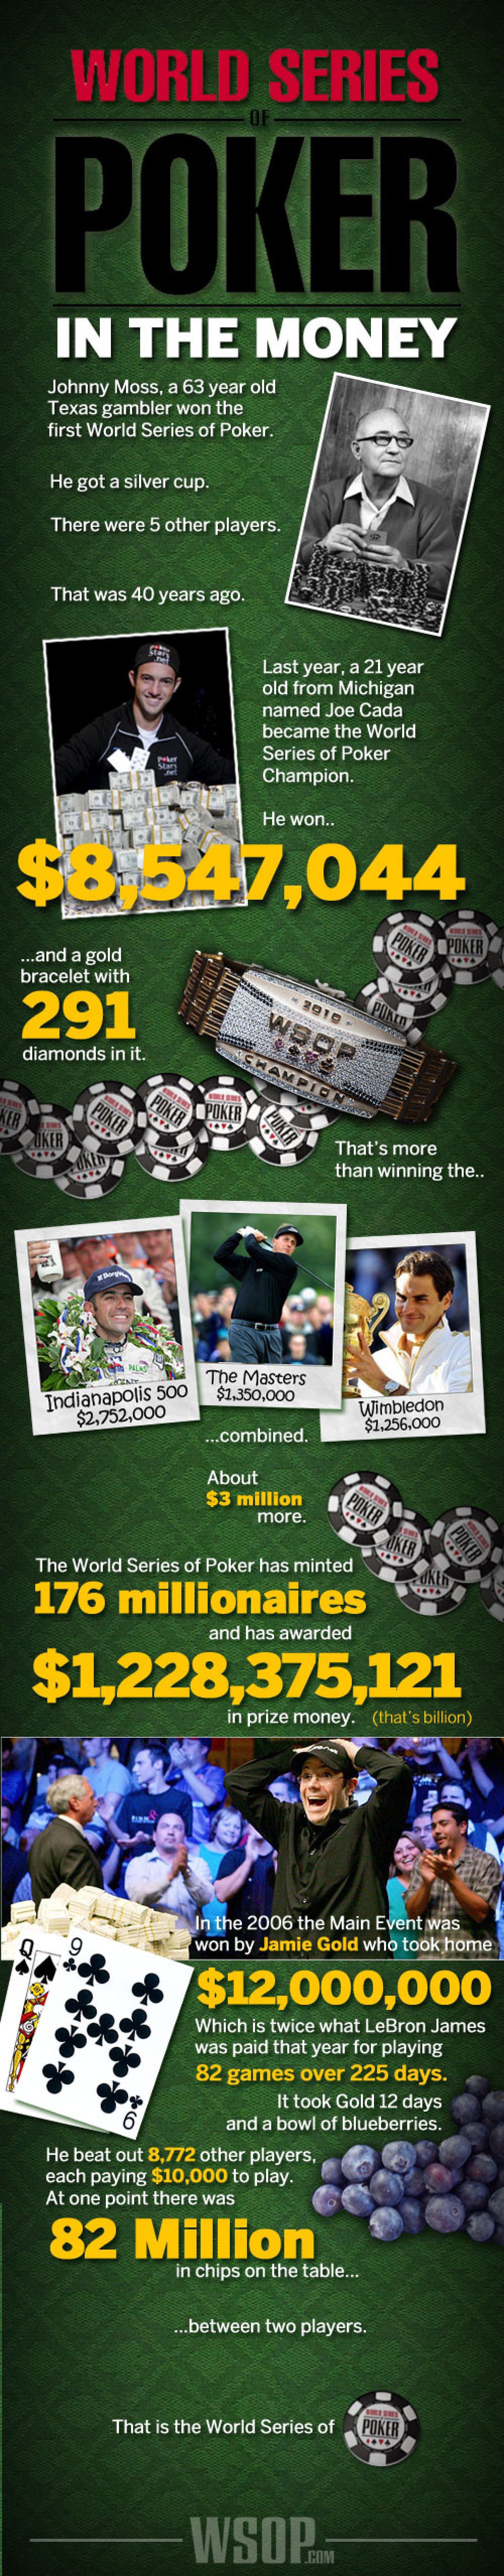 World Series of Poker: In the Money Infographic